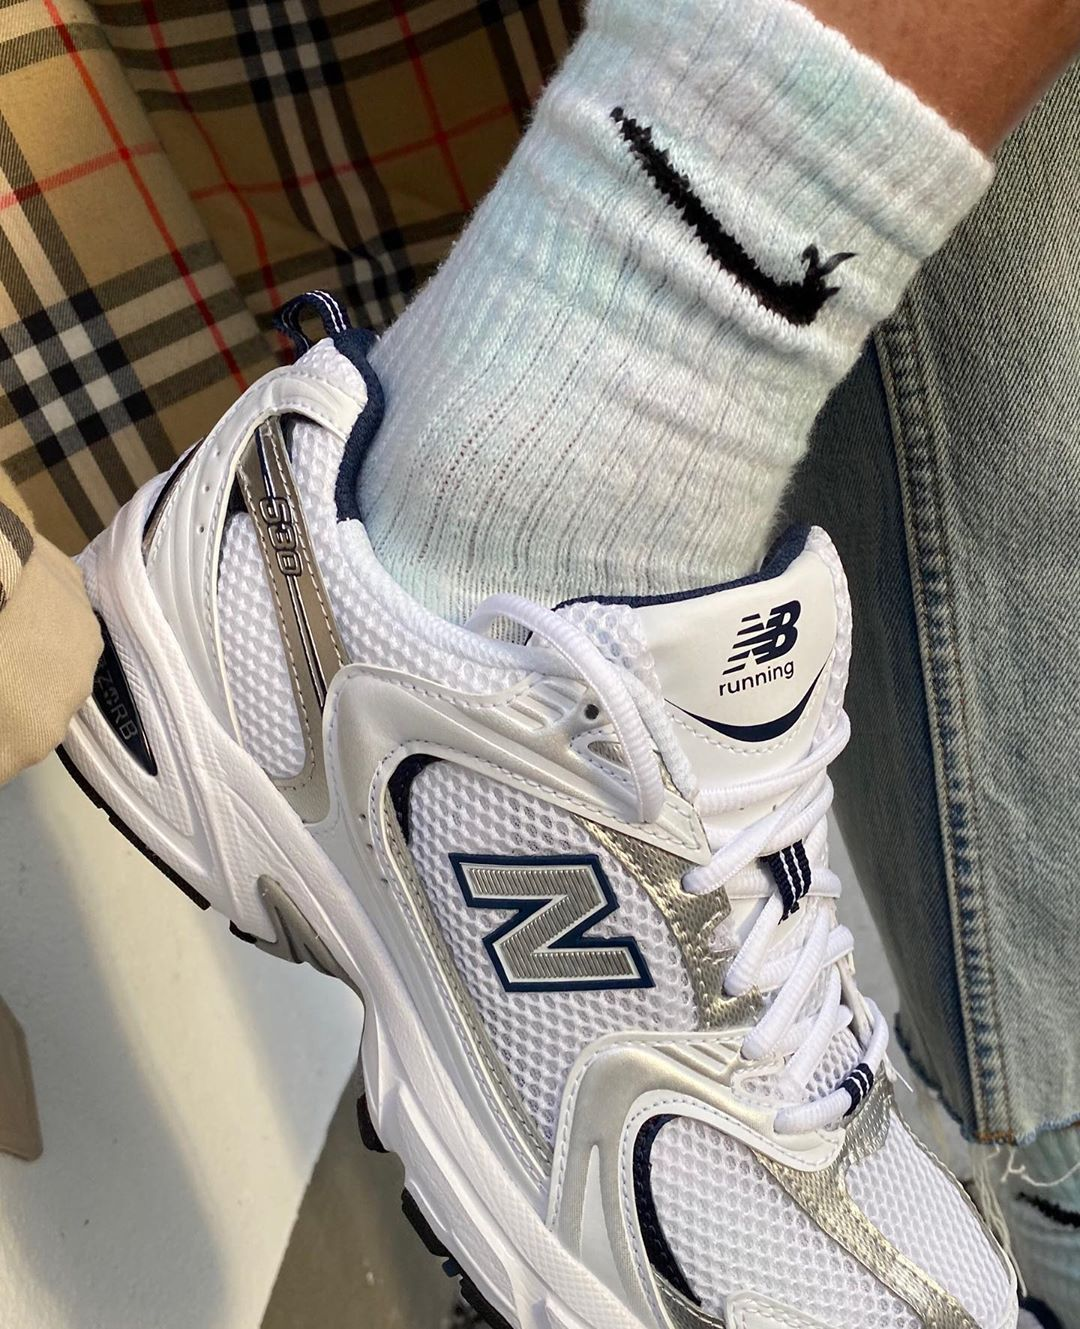 Pin by Poshthugdungeon on Depop in 2020 | New balance ...